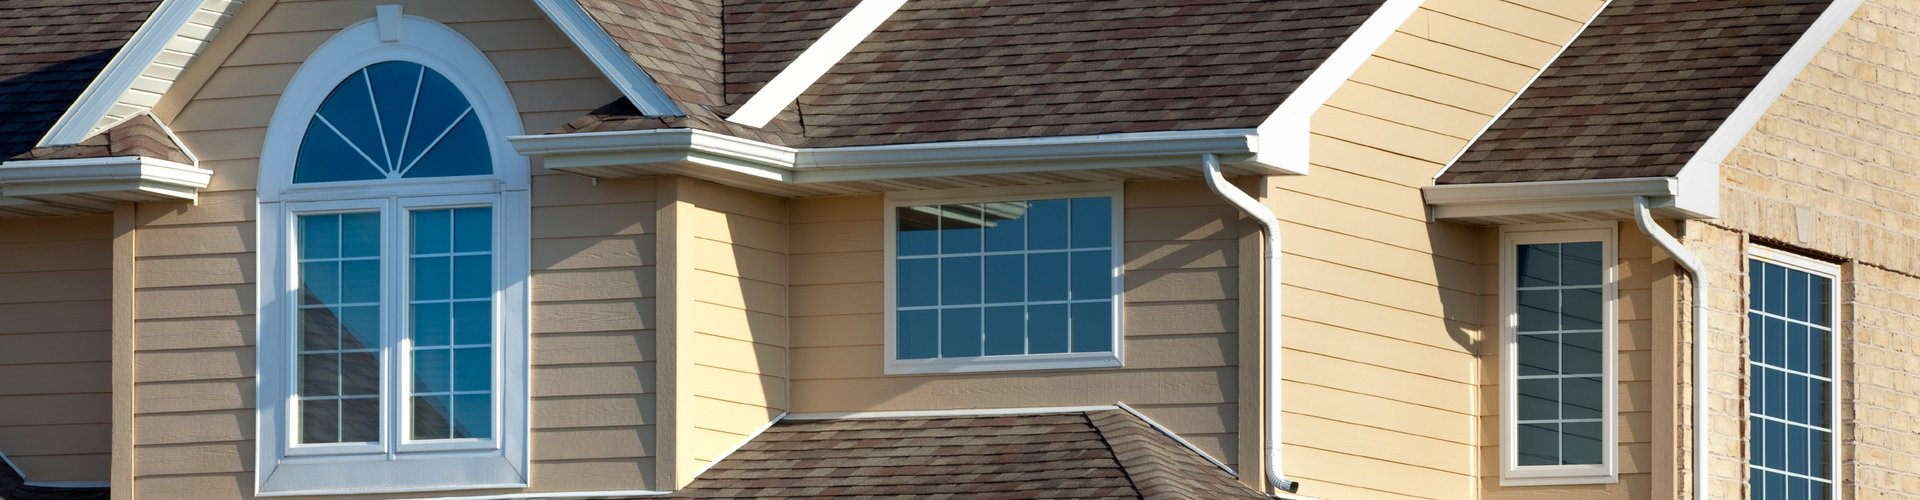 Western Siding Idaho Siding Contractors Replacement